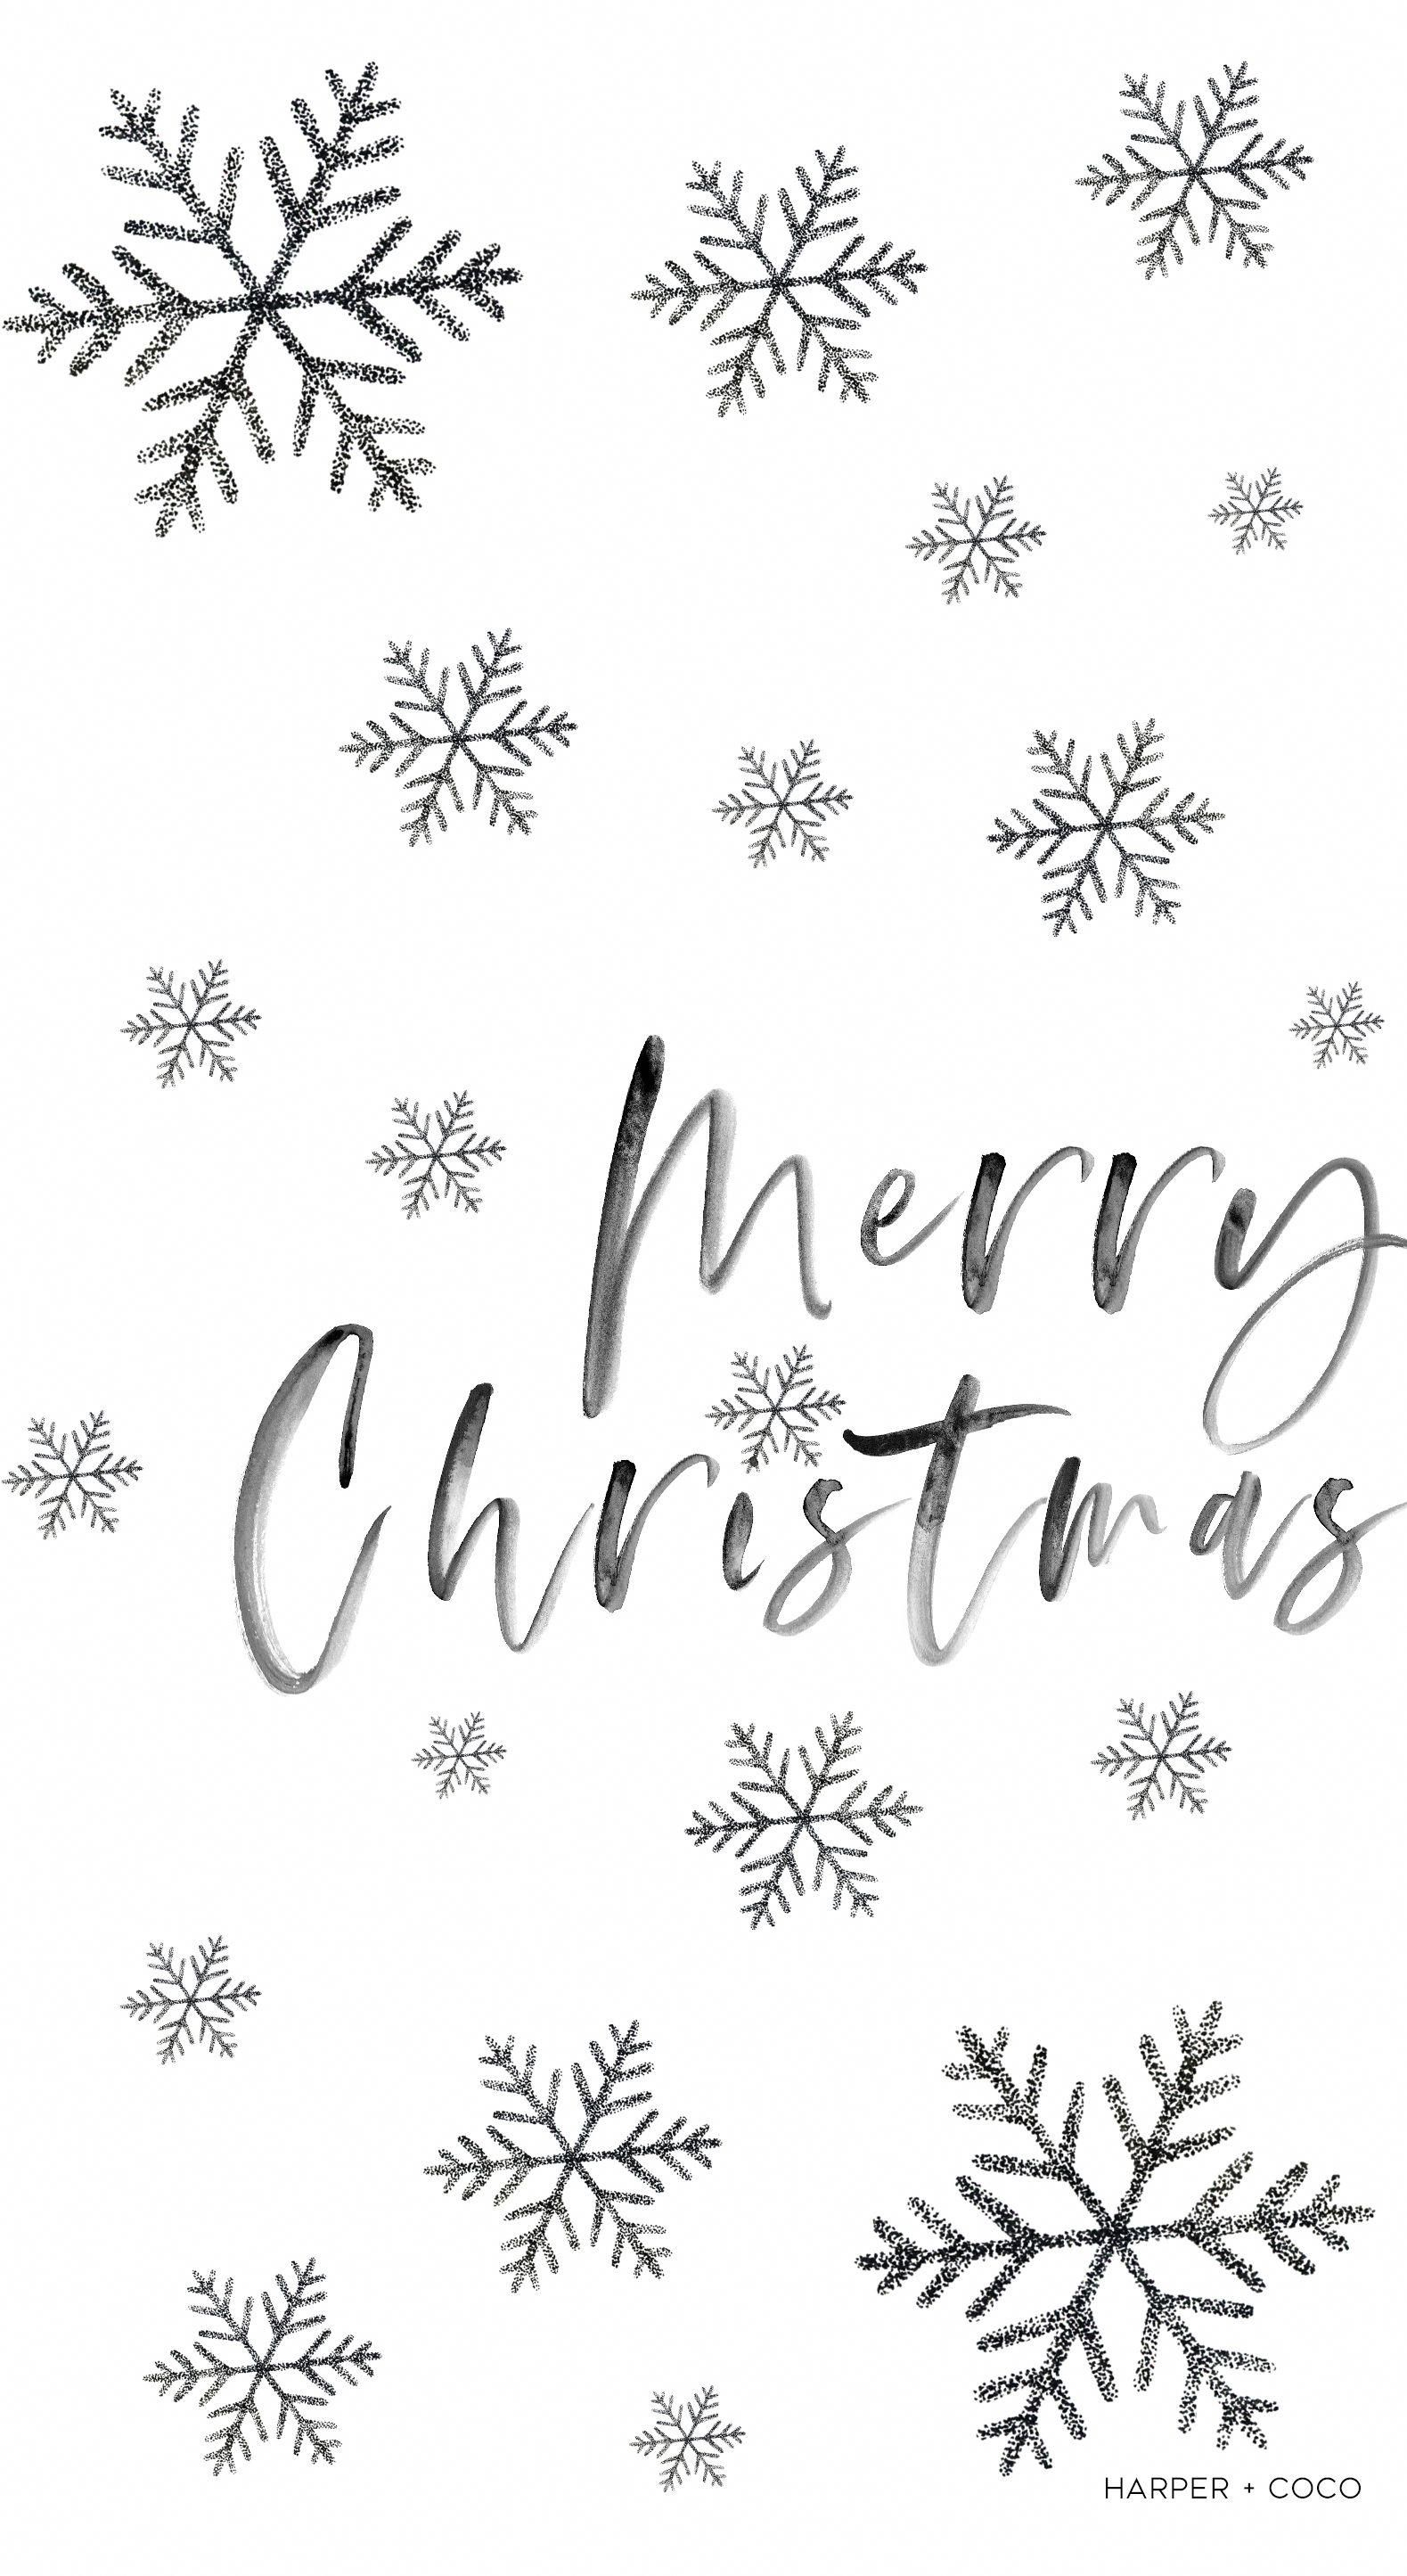 Merry Christmas Iphone Wallpaper Black And White Snowflakes Wallpaper Christmas Christmas Phone Wallpaper Wallpaper Iphone Christmas Snowflake Wallpaper